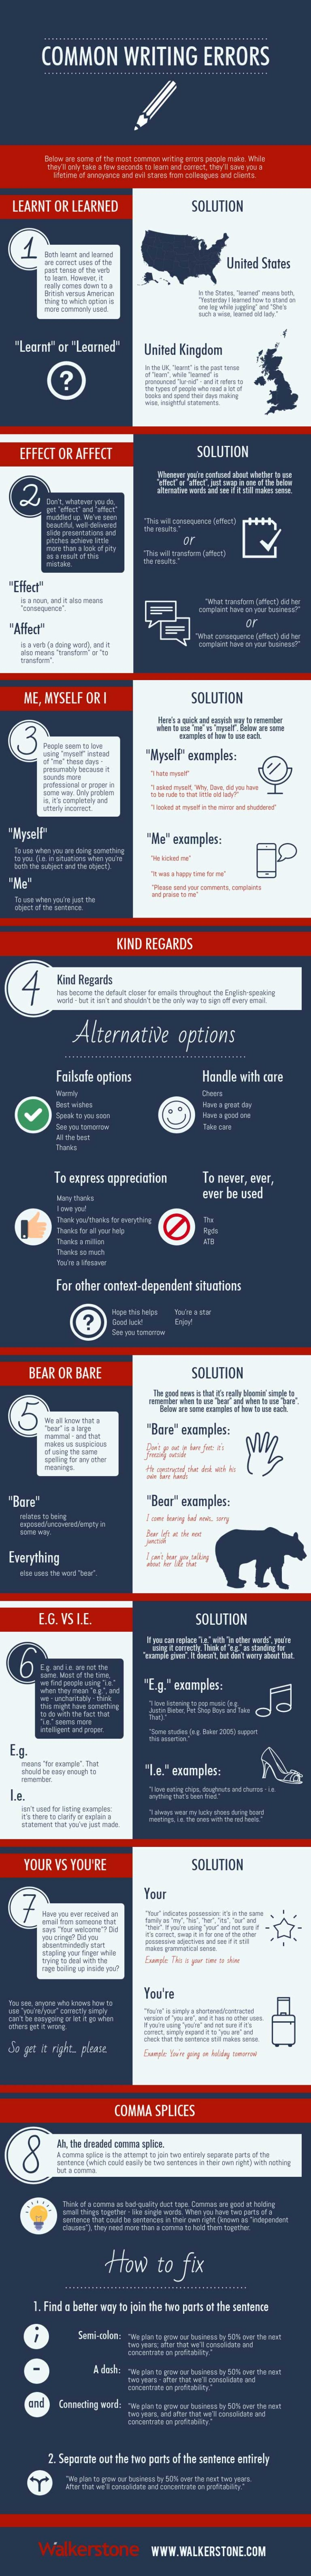 Common-writing-errors-Infographic-1-768x6356.jpg